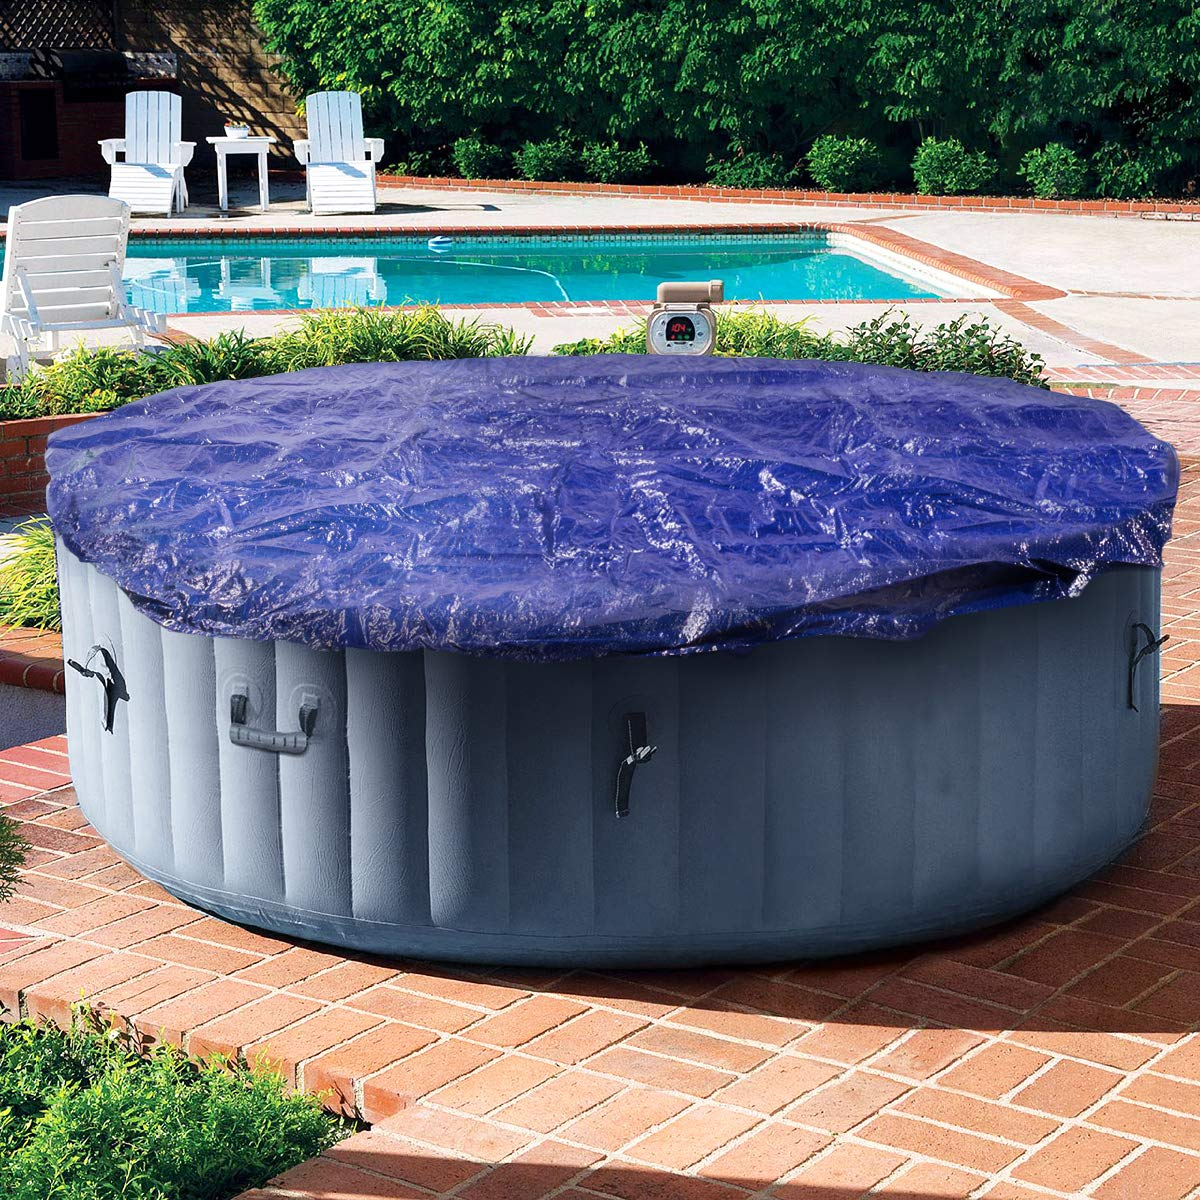 Details about Xpusa 15-ft Round Rugged Mesh tarp Above Ground Pool Winter  Cover Brand New